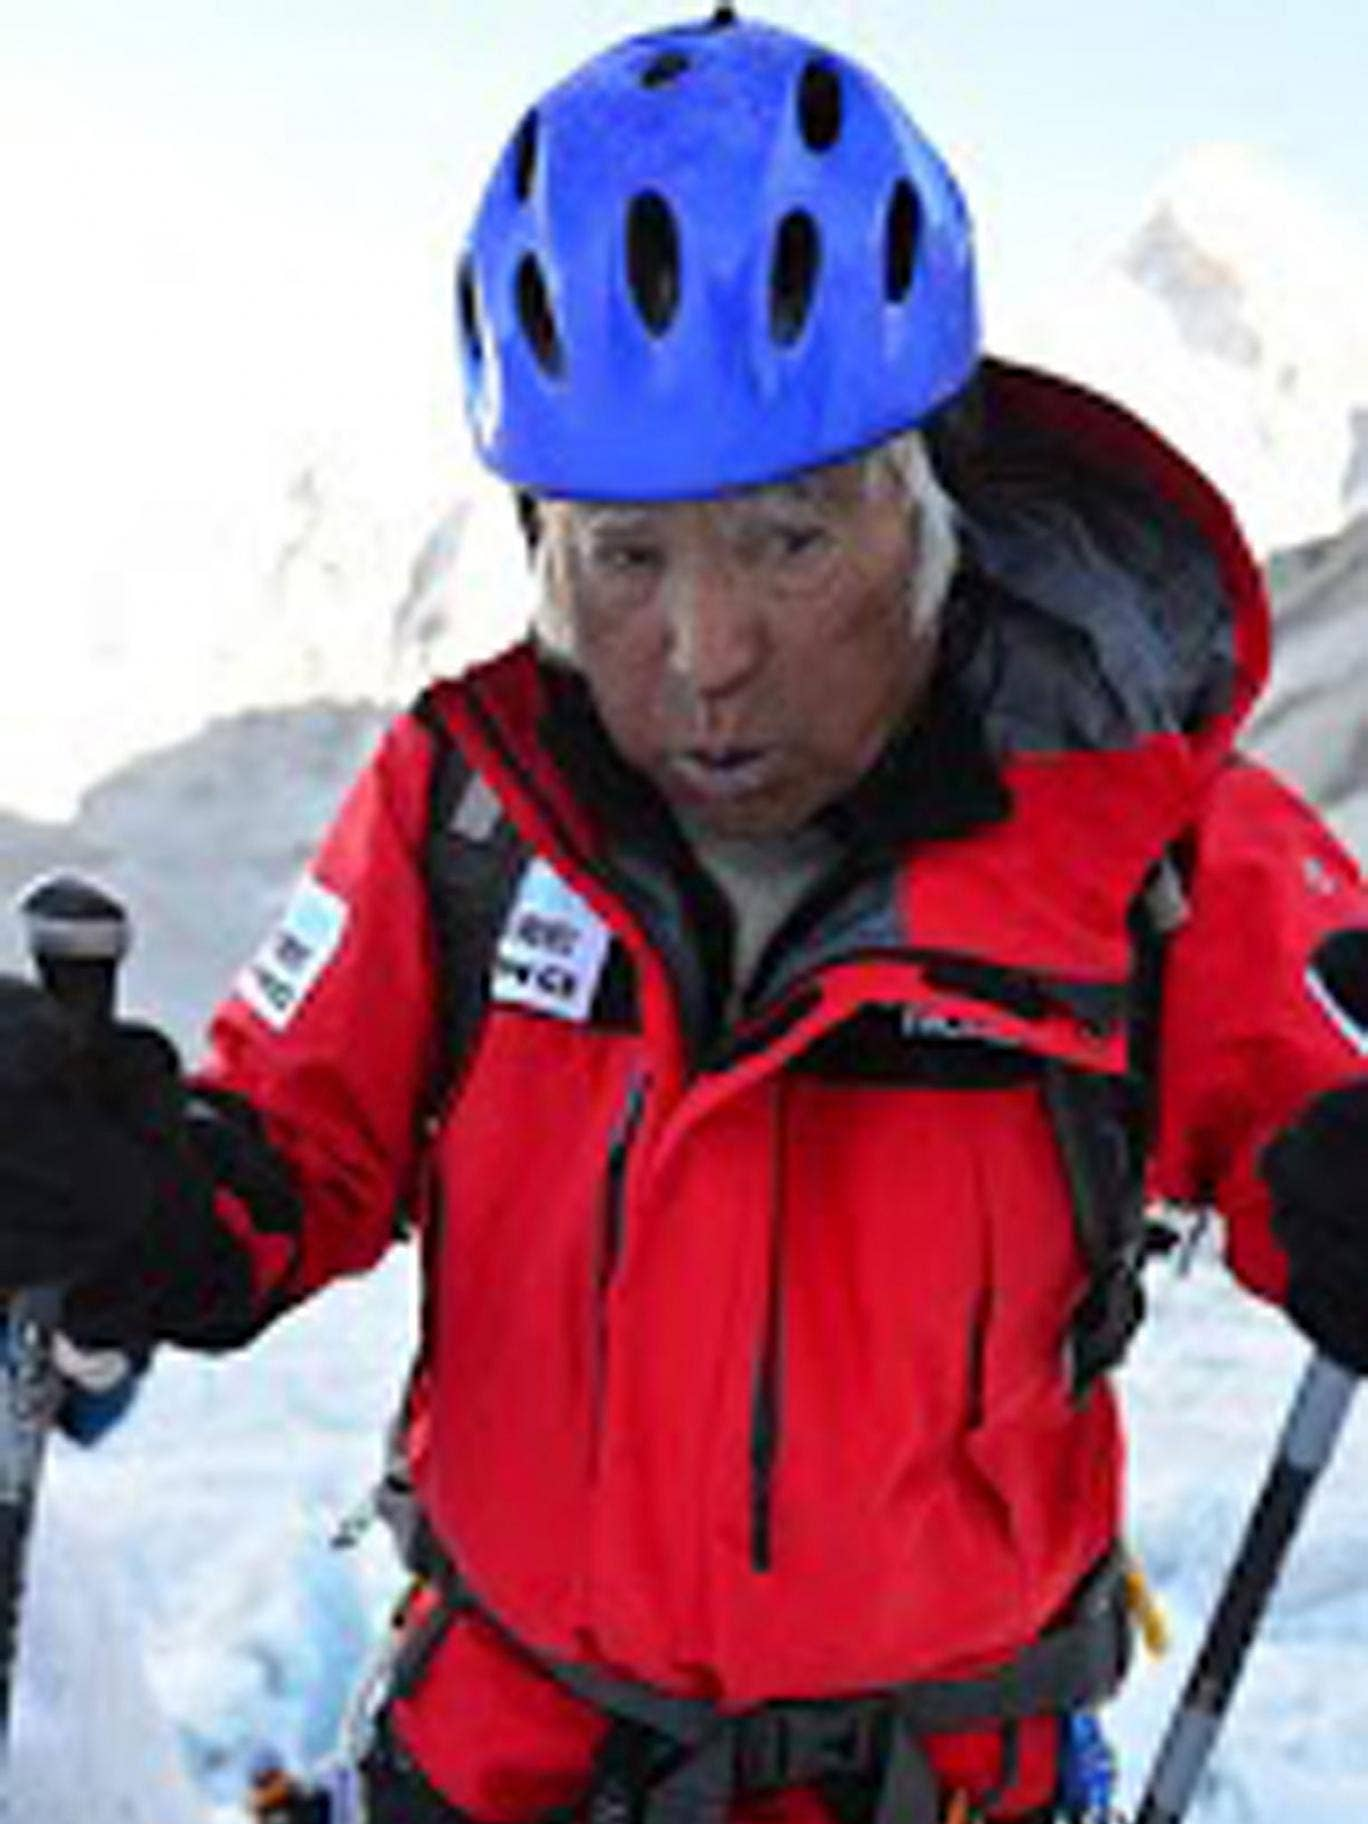 Yuichiro Miura: The Japanese climber made the record book with his first ascent in 2003